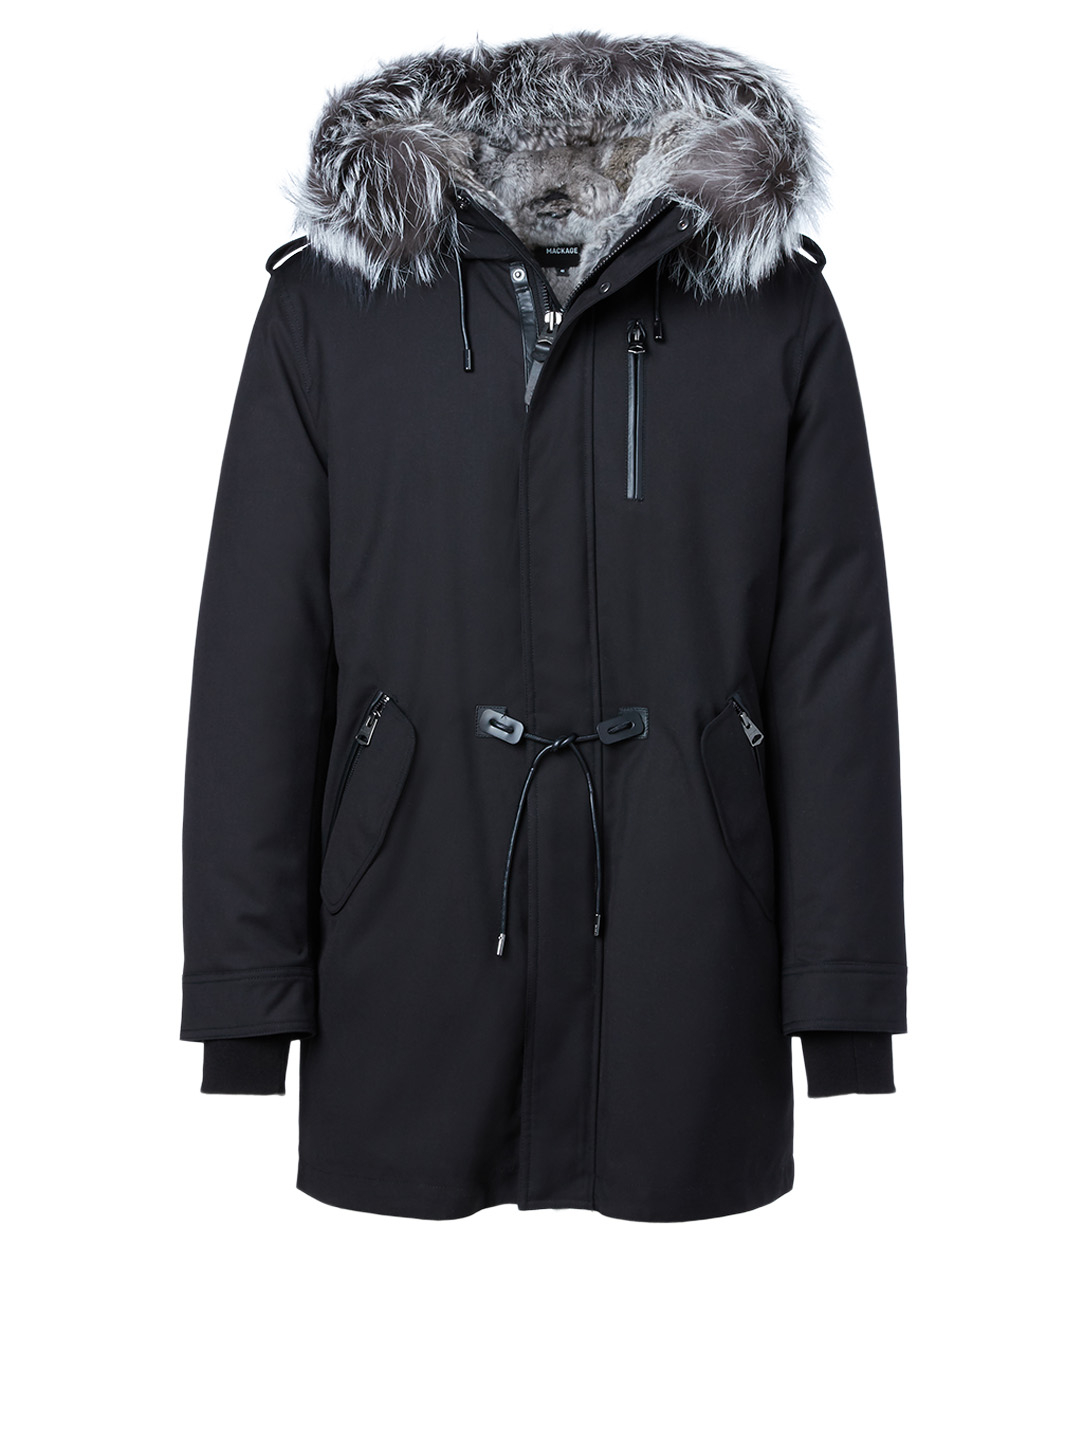 MACKAGE Moritz Down Parka With Silverfox Fur Hood Men's Black